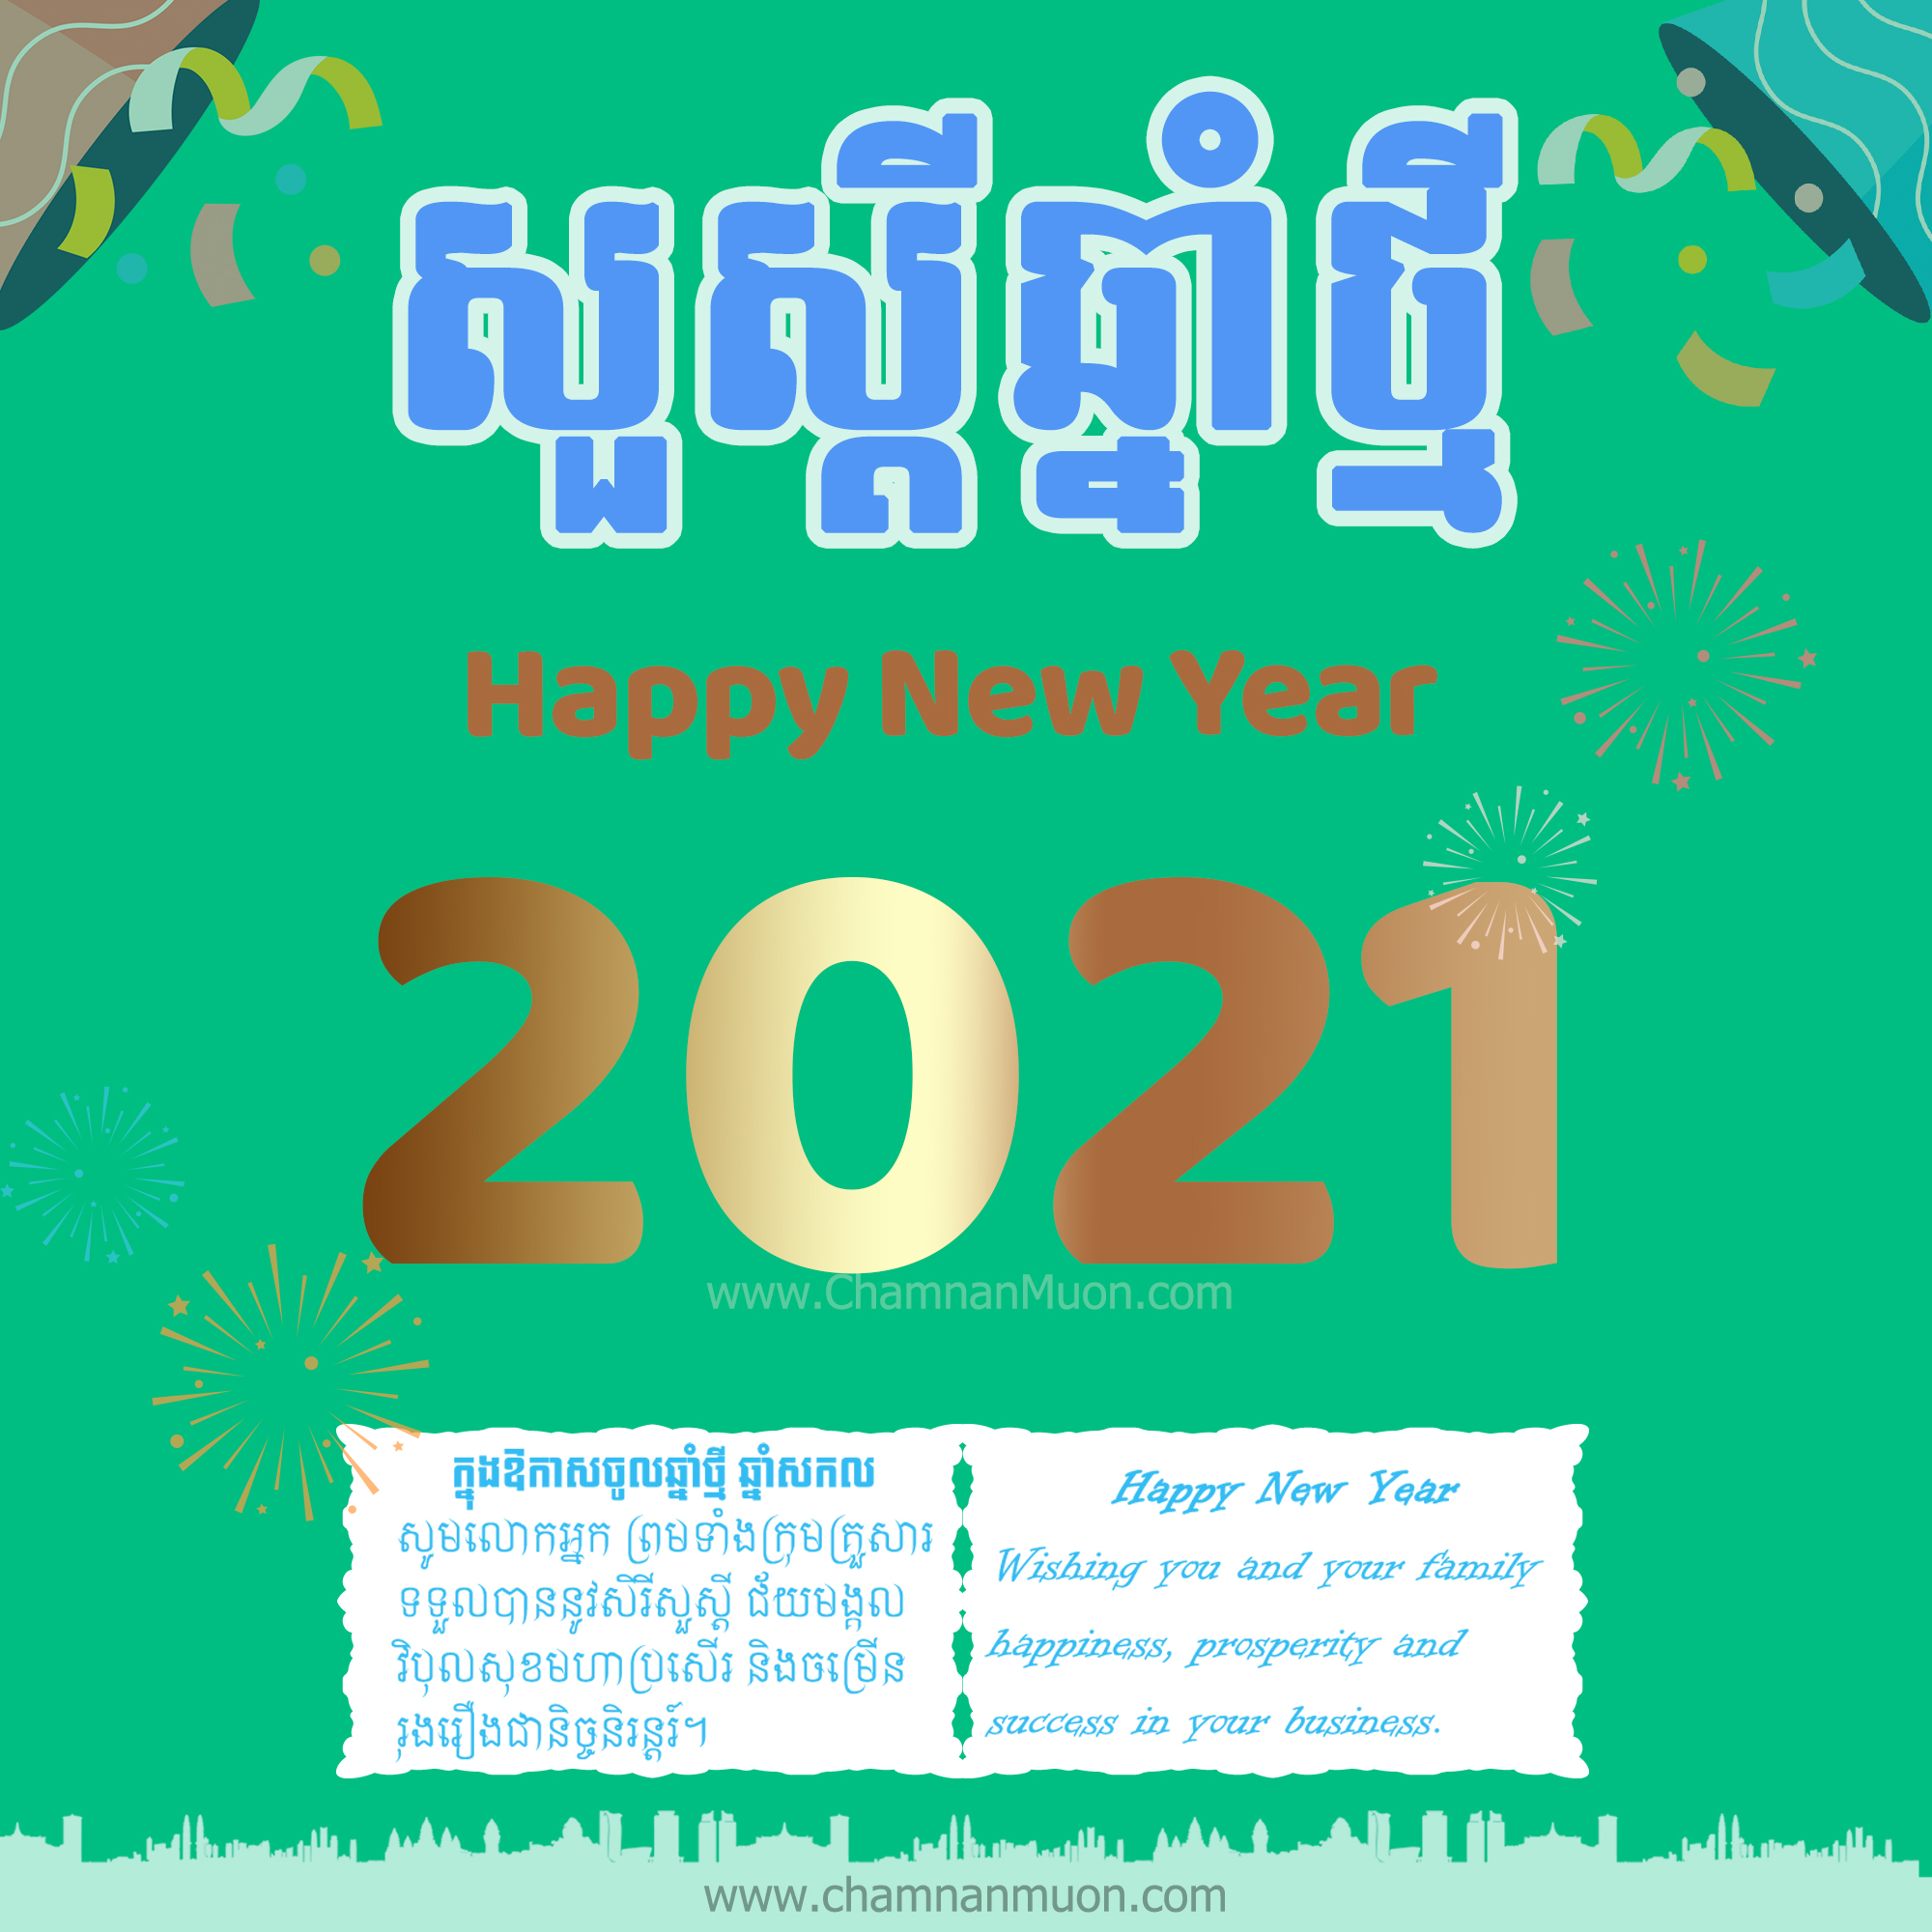 Happy New Year 2021 - Khmer greeting card by Chamnan